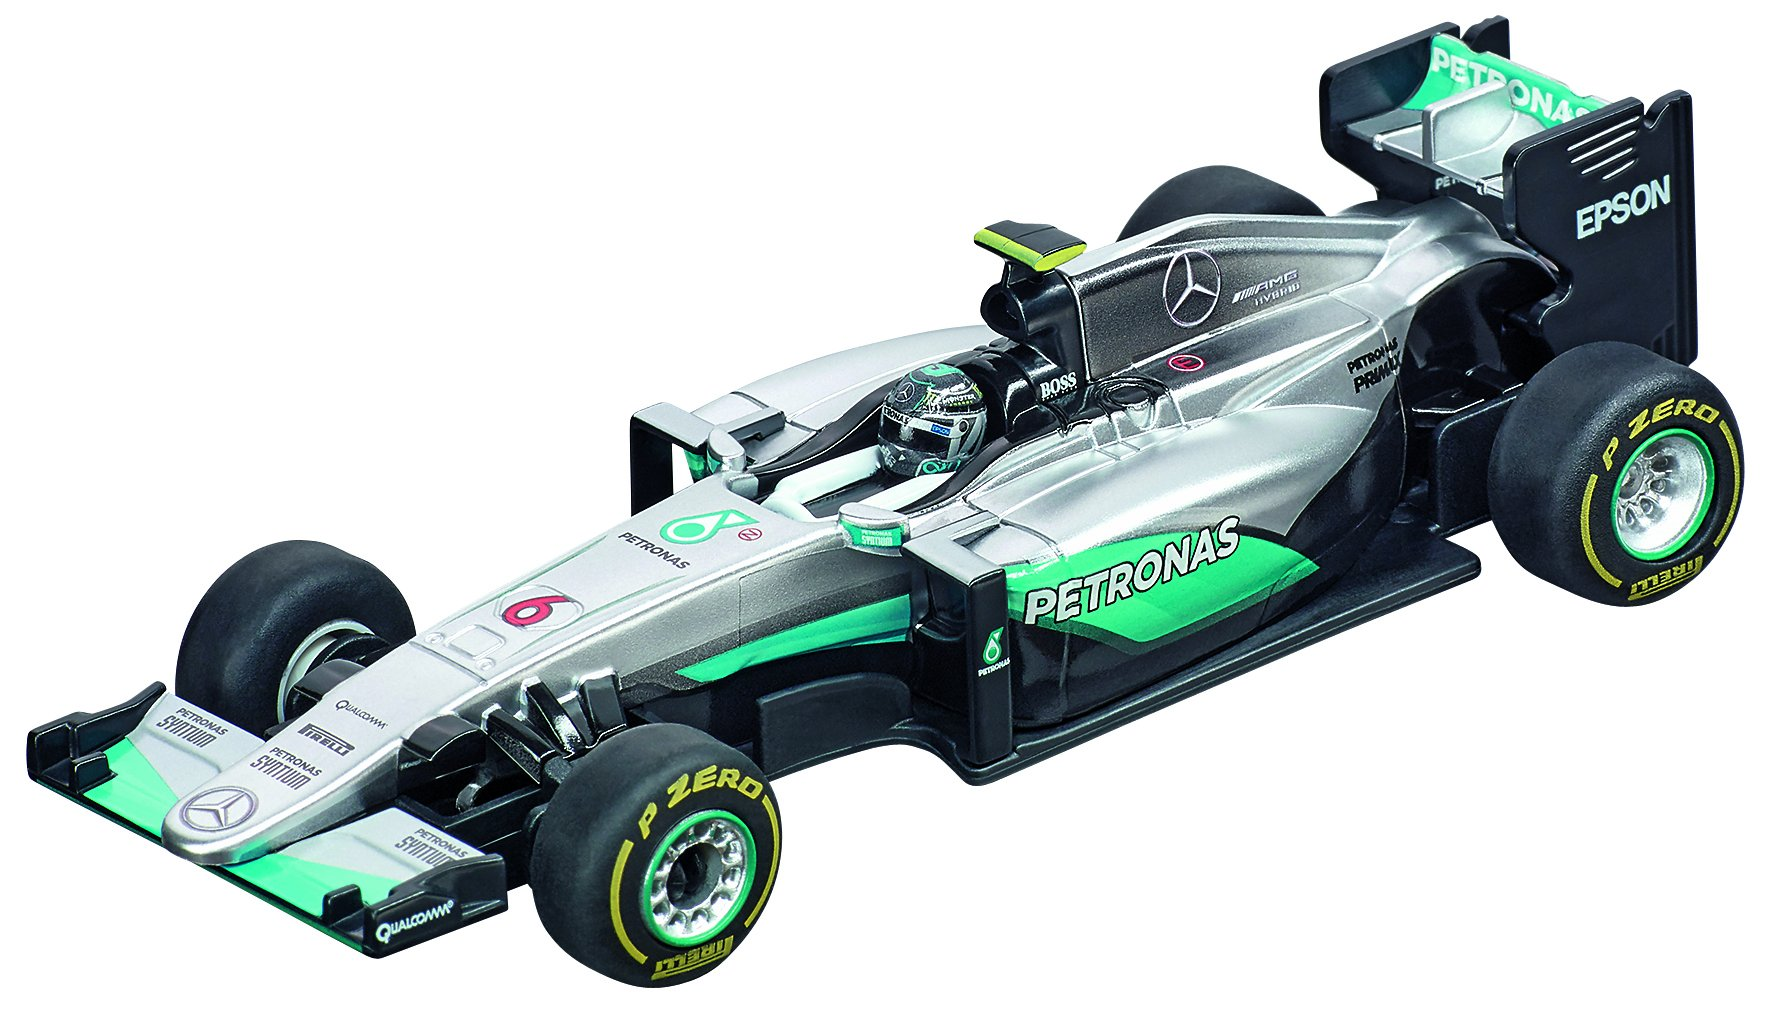 Carrera USA Carrera 64096 GO Mercedes F1 W7 Hybrid, Nico Roserg, No.6 Slot Car (1:43 Scale)